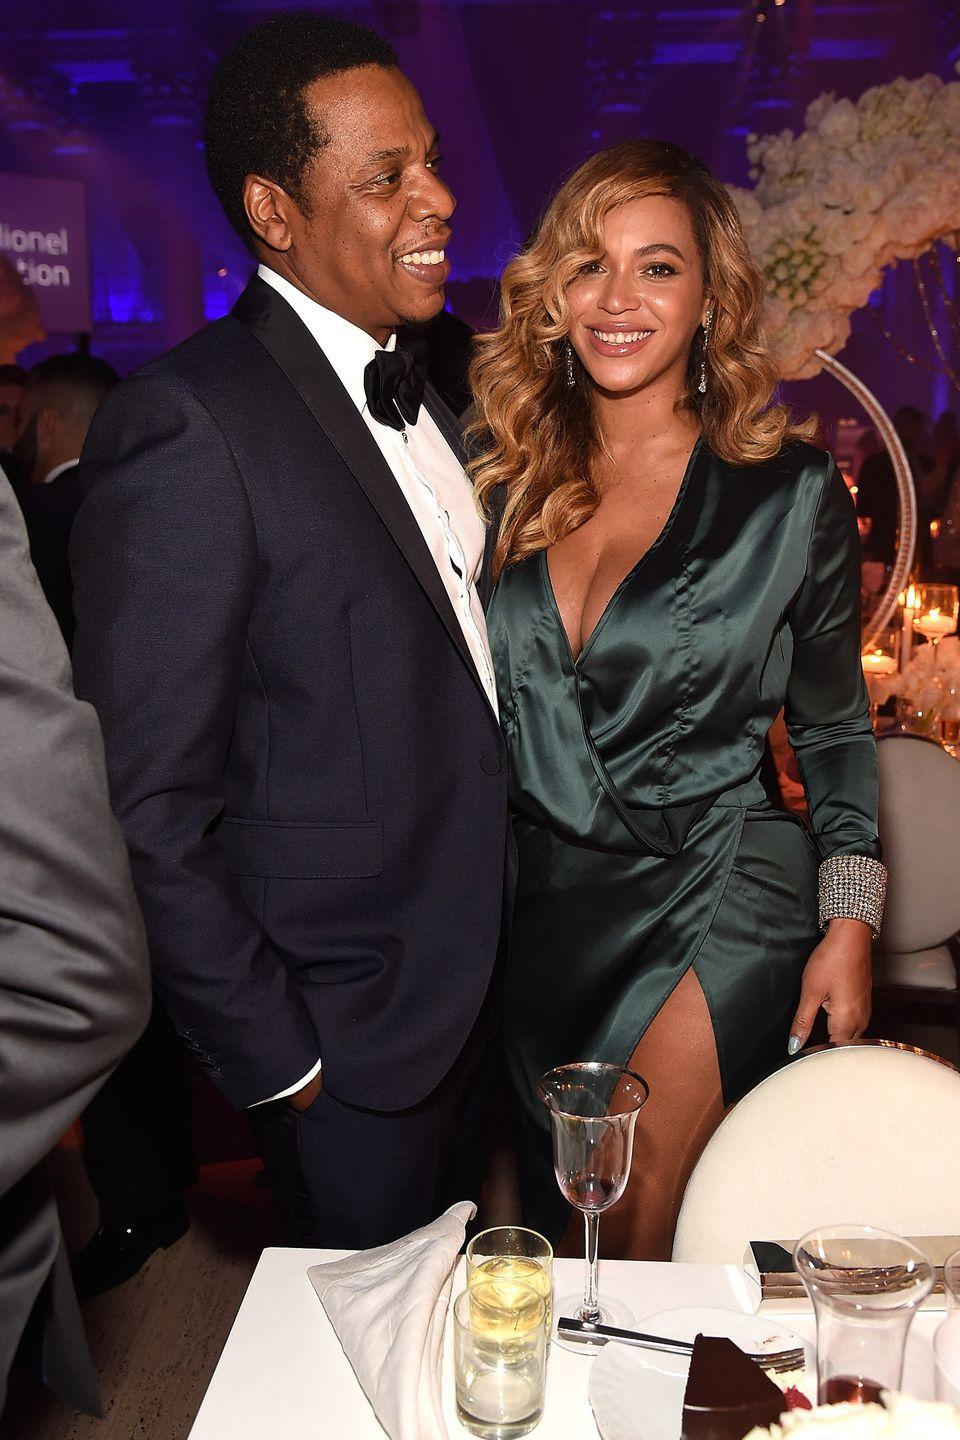 "<p>The power couple first started dating back in 2001, when Jay-Z was 32 years old and Beyoncé was only 20. They later tied the knot in a super <a href=""http://people.com/music/beyonce-jayz-wedding-anniversary-photo-tina-knowles/"" rel=""nofollow noopener"" target=""_blank"" data-ylk=""slk:secretive wedding"" class=""link rapid-noclick-resp"">secretive wedding</a> on April 4, 2008, and gave birth to daughter Blue Ivy Carter in 2012. In 2017, Beyoncé completely broke the internet with <a href=""https://www.harpersbazaar.com/culture/news/a20368/beyonce-pregnancy-photo-symbolism-decoded/"" rel=""nofollow noopener"" target=""_blank"" data-ylk=""slk:an Instagram post"" class=""link rapid-noclick-resp"">an Instagram post</a> announcing that the family of three was expecting twins. The couple soon welcomed babies <a href=""https://www.harpersbazaar.com/celebrity/latest/a10042051/beyonce-twins-first-photo/"" rel=""nofollow noopener"" target=""_blank"" data-ylk=""slk:Rumi and Sir"" class=""link rapid-noclick-resp"">Rumi and Sir</a> in June of that year.</p>"